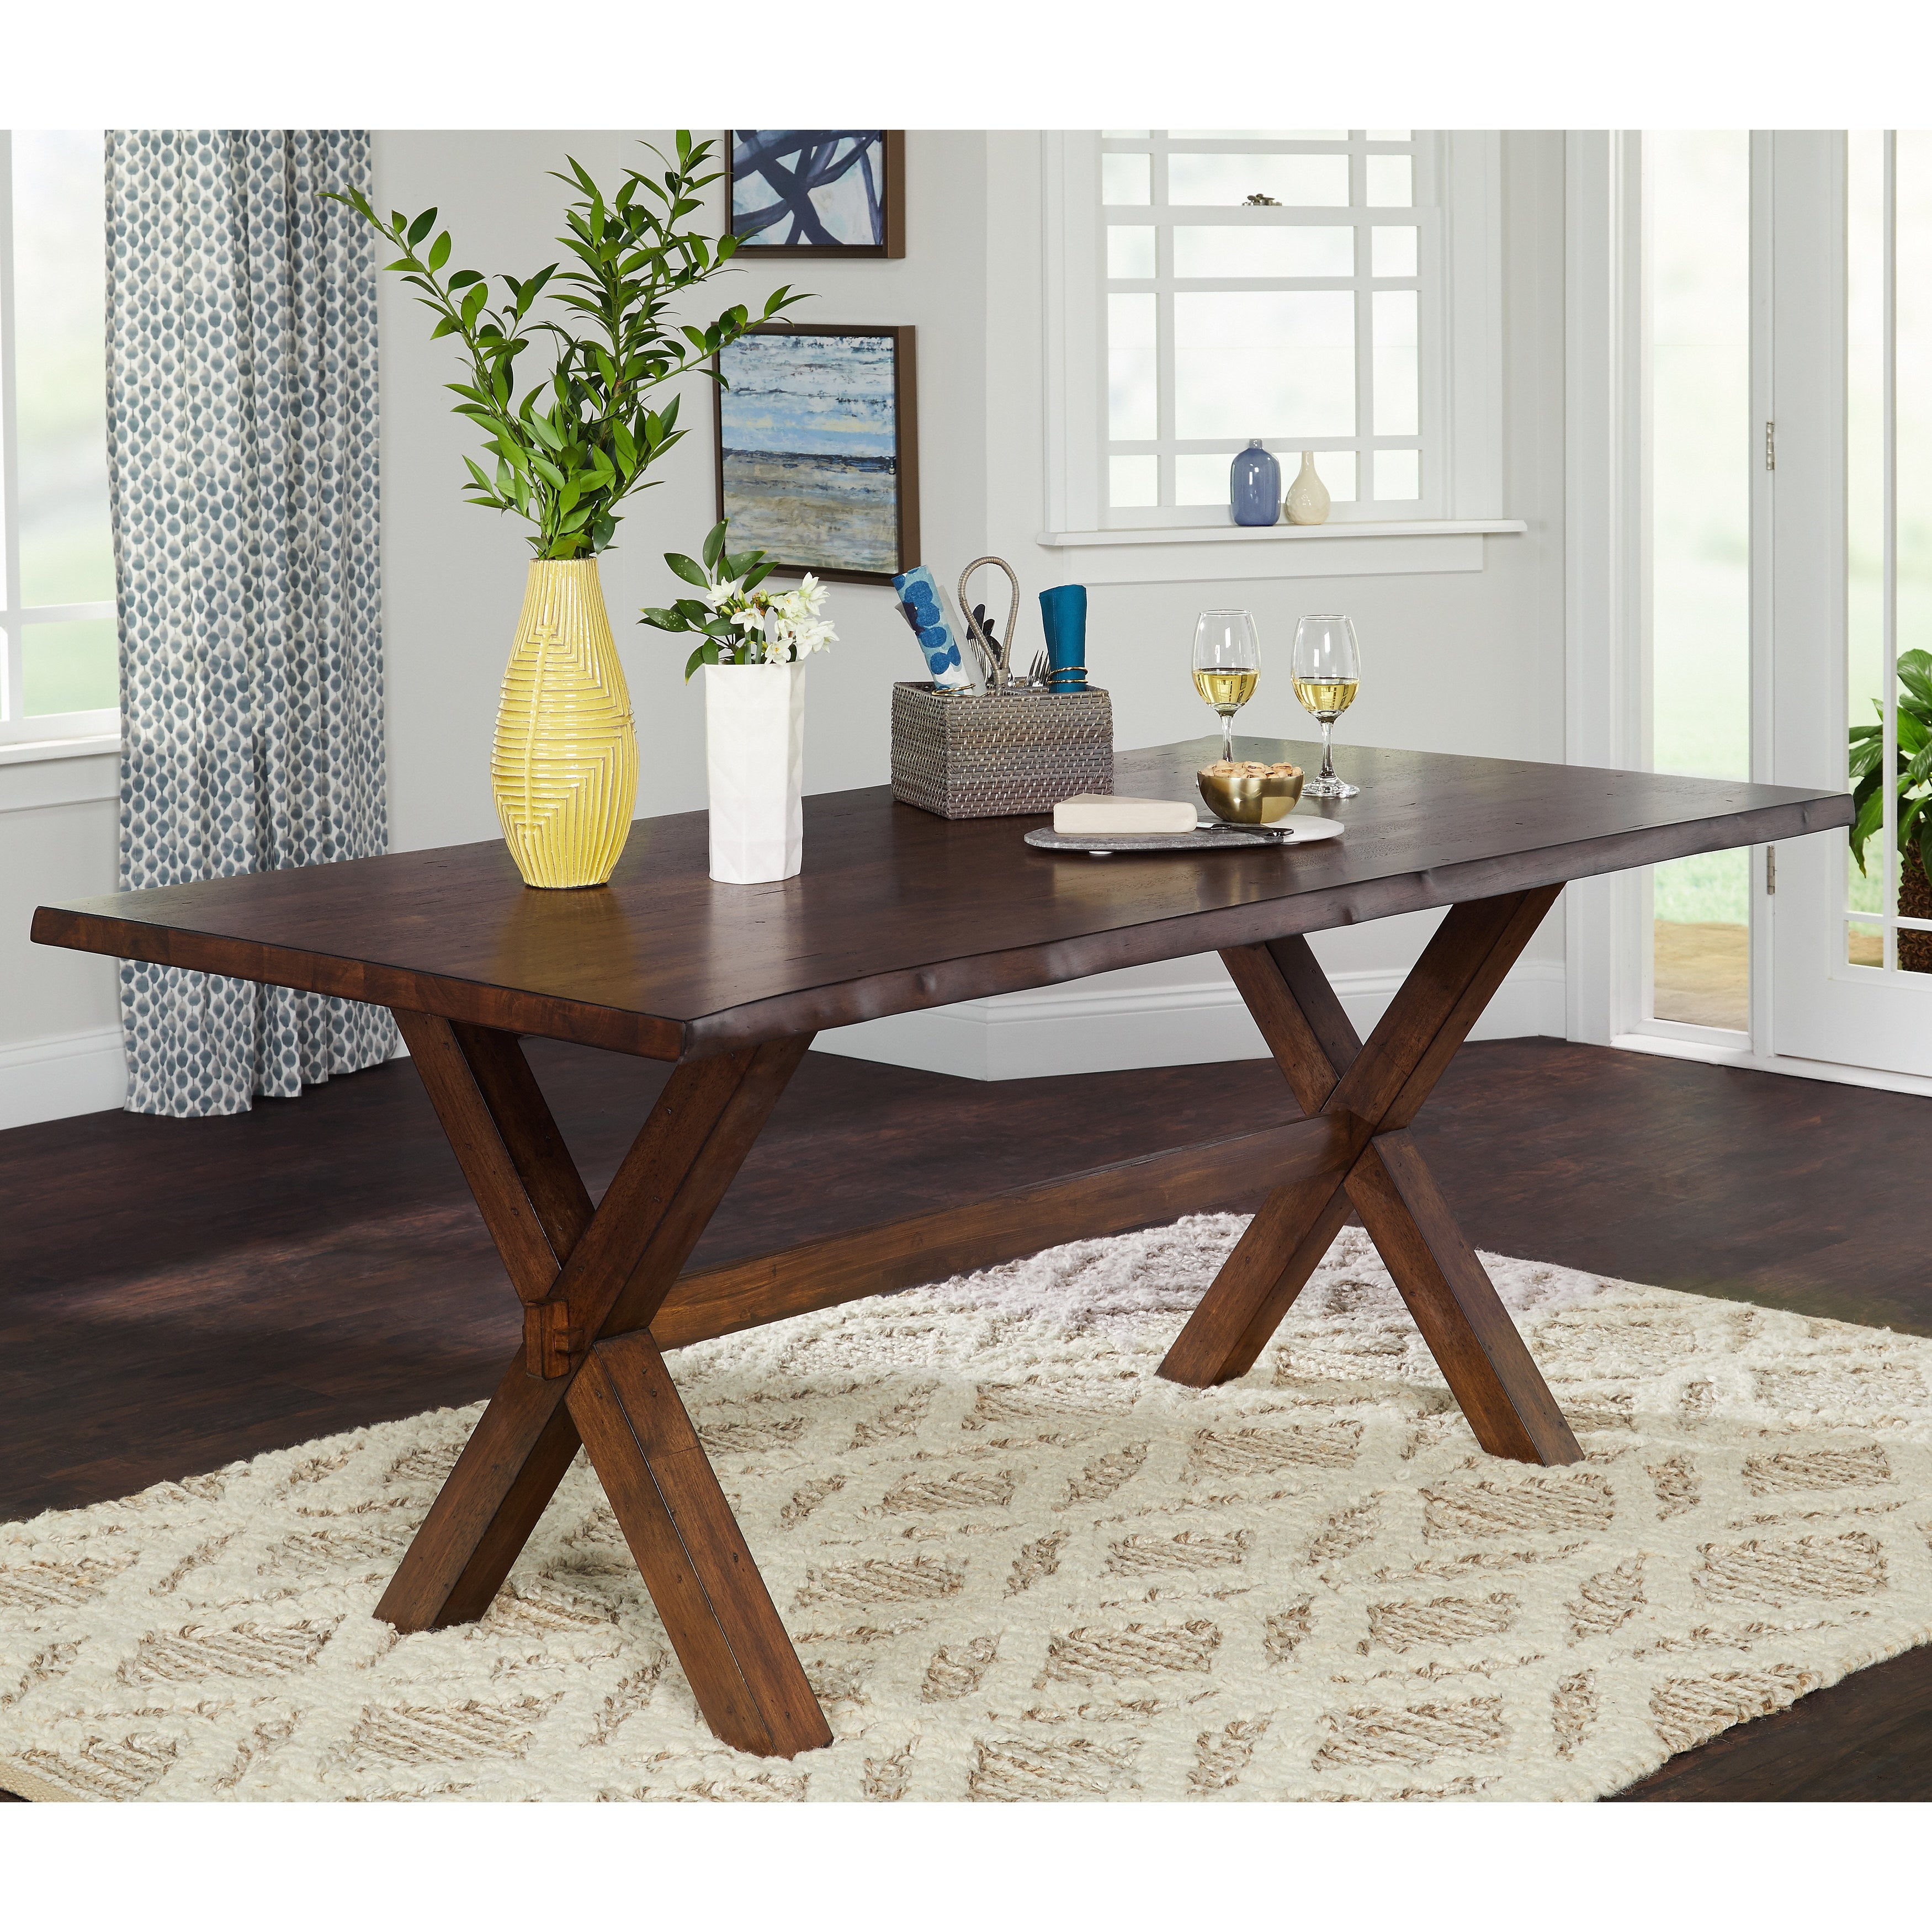 Buy Farmhouse Kitchen & Dining Room Tables Online At Overstock | Our In Most Popular Falmer 3 Piece Solid Wood Dining Sets (View 15 of 20)